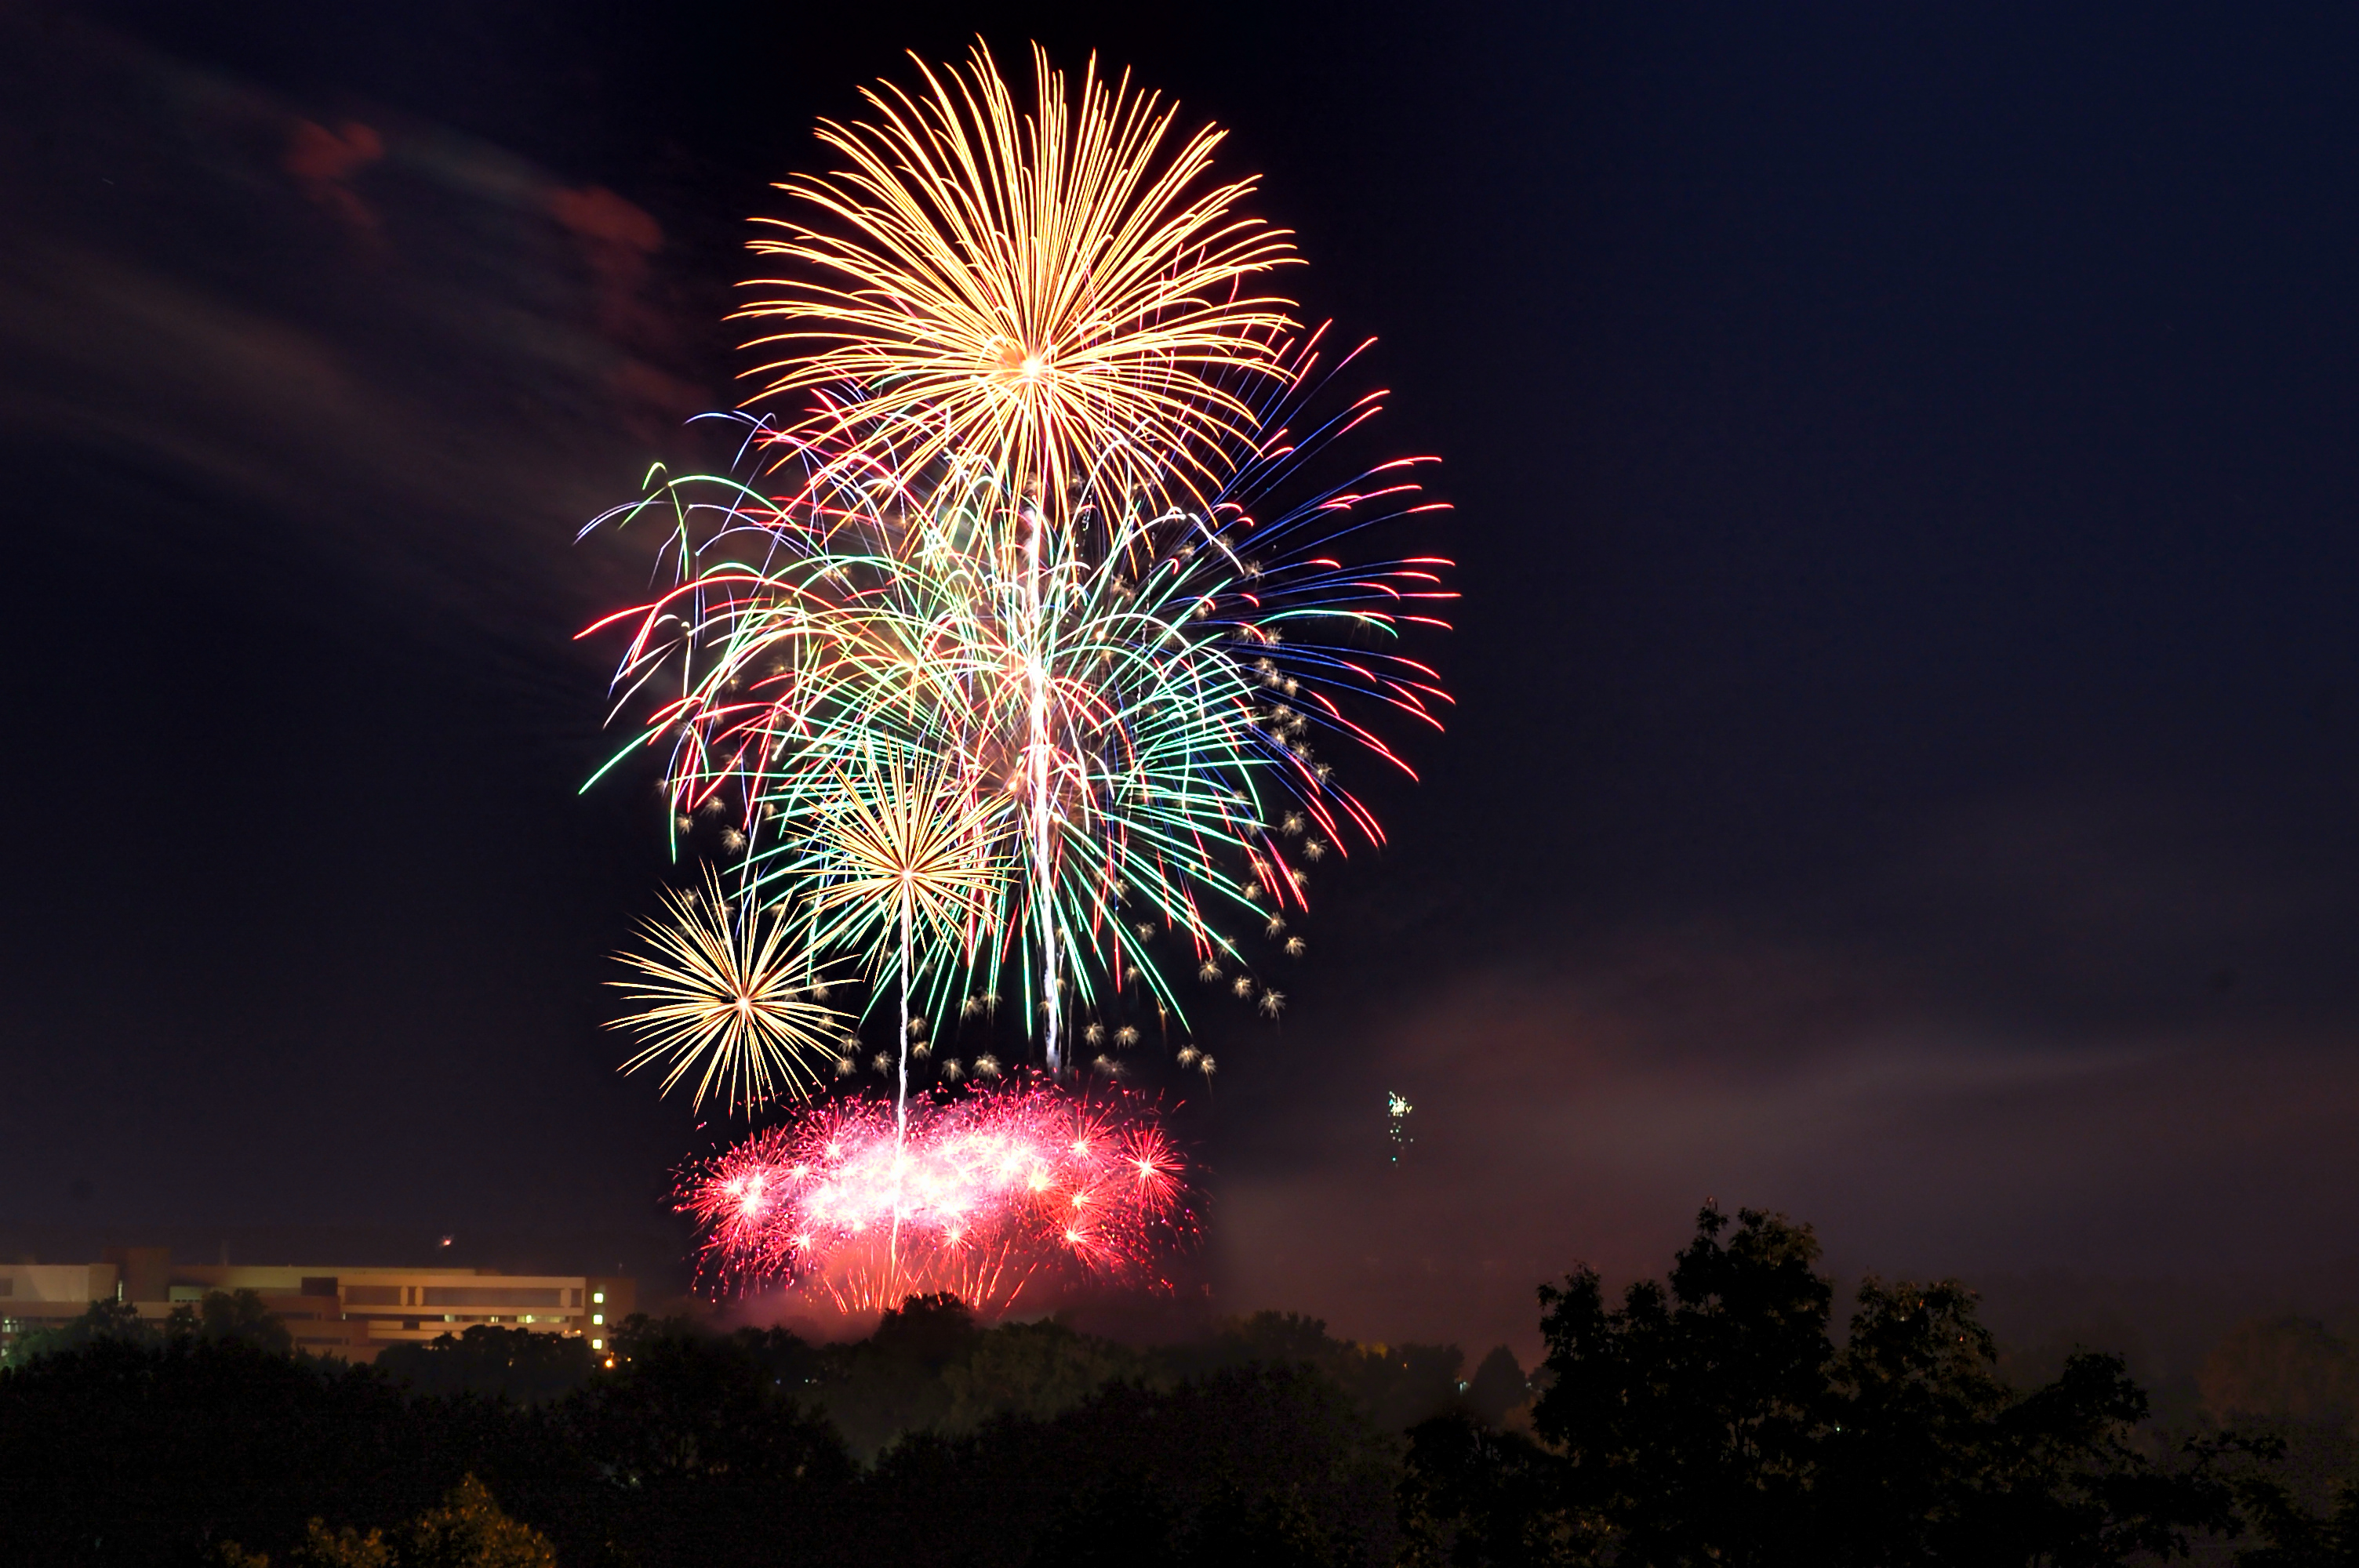 Fireworks in Eau Claire, WI - Photo by: Tim Abraham